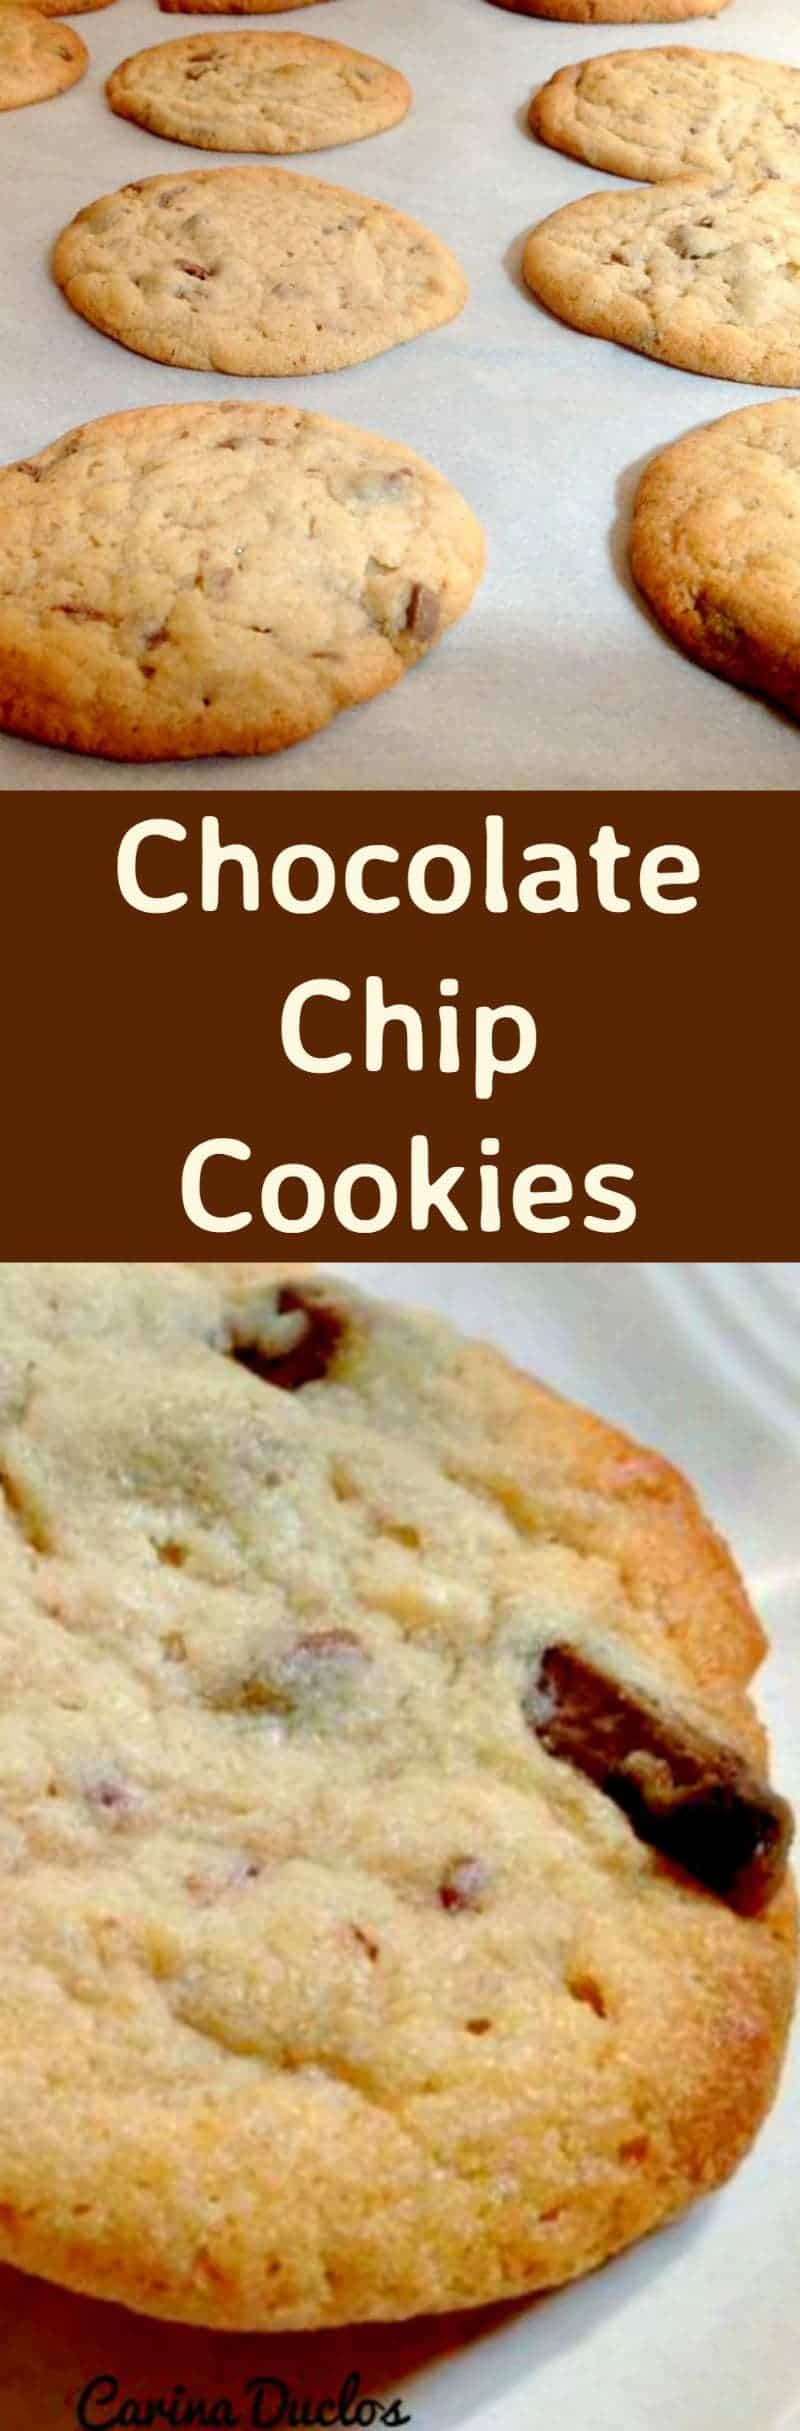 Chocolate Chip Cookies - Incredibly Quick & Easy to make and of course DELICIOUS!!